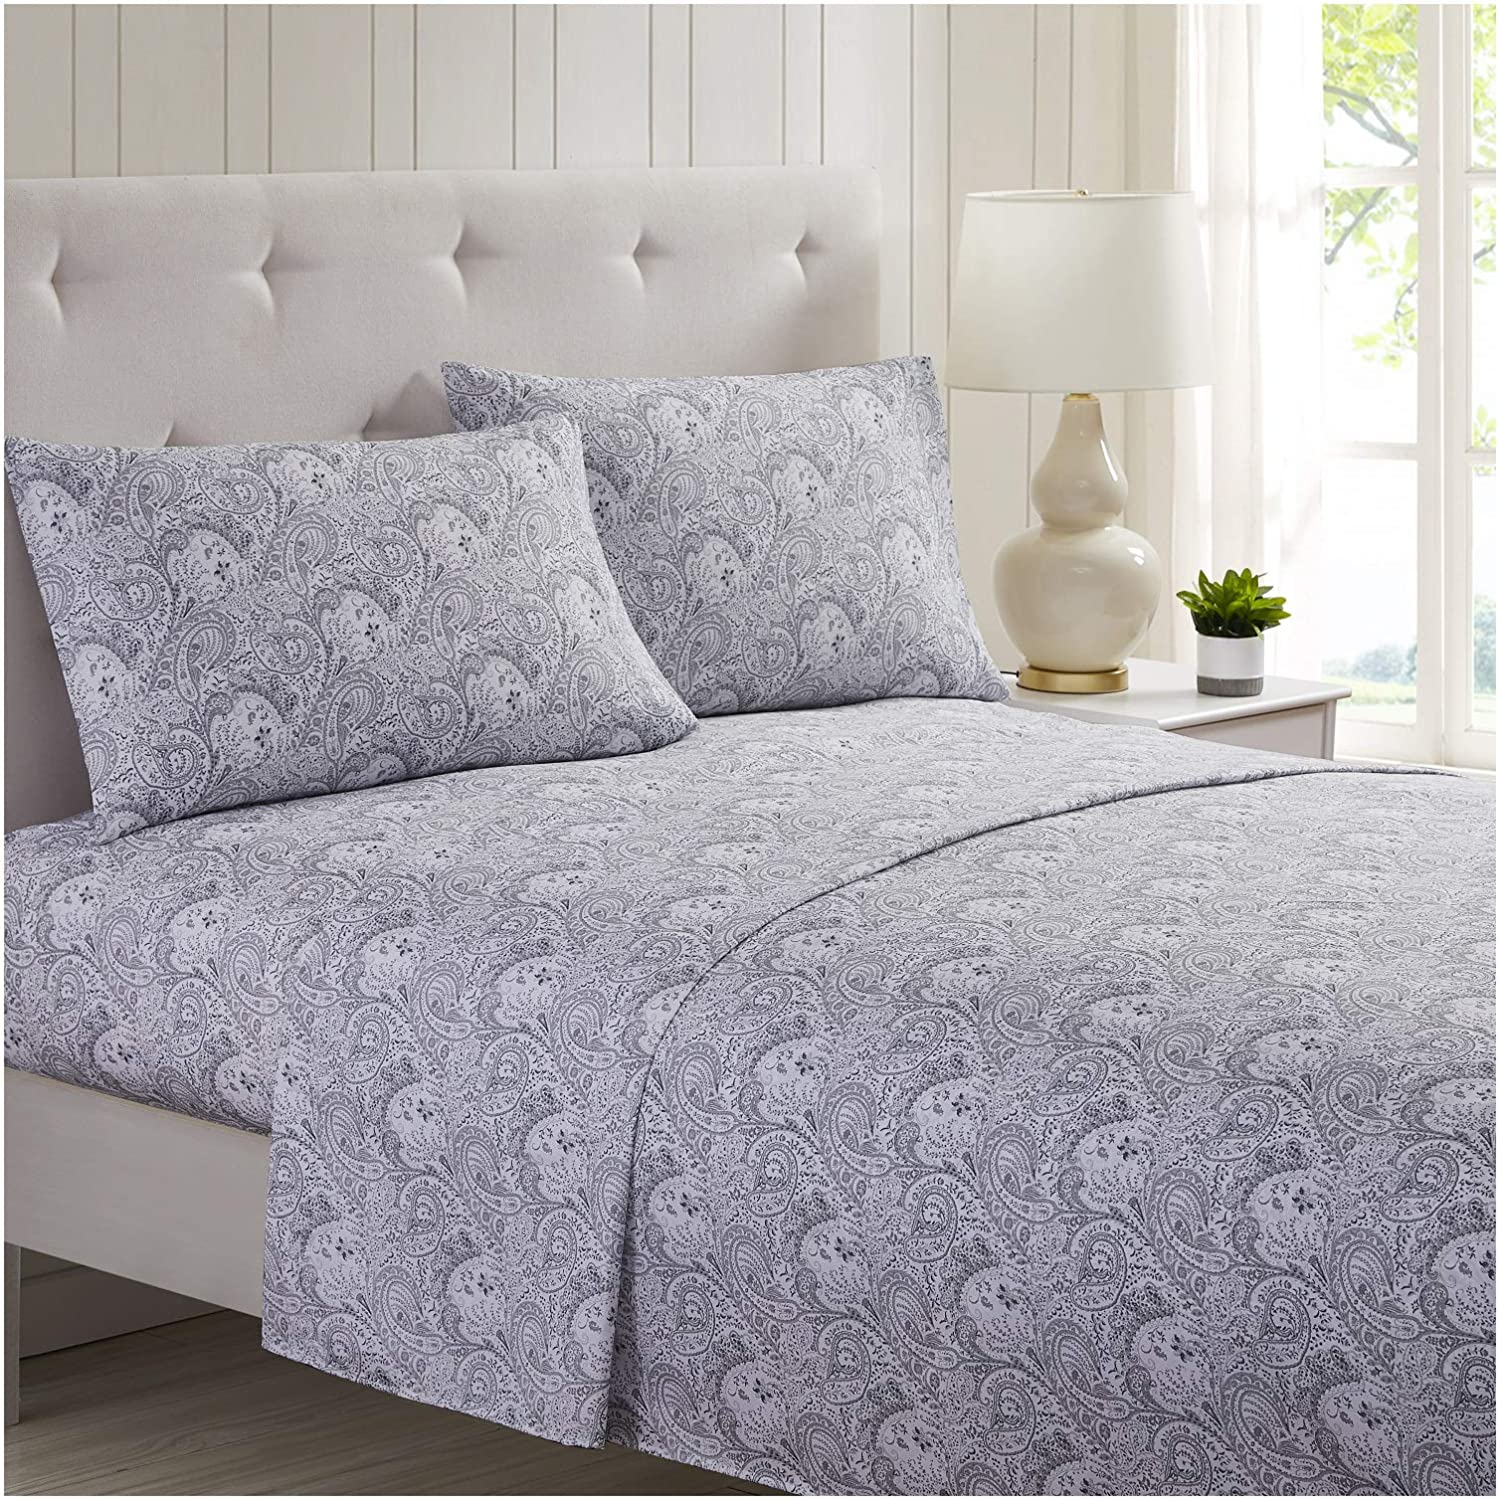 Mellanni Bed Sheet Set Brushed Microfiber 1800 Bedding - Wrinkle, Fade, Stain Resistant - 4 Piece (Queen, Paisley Gray)